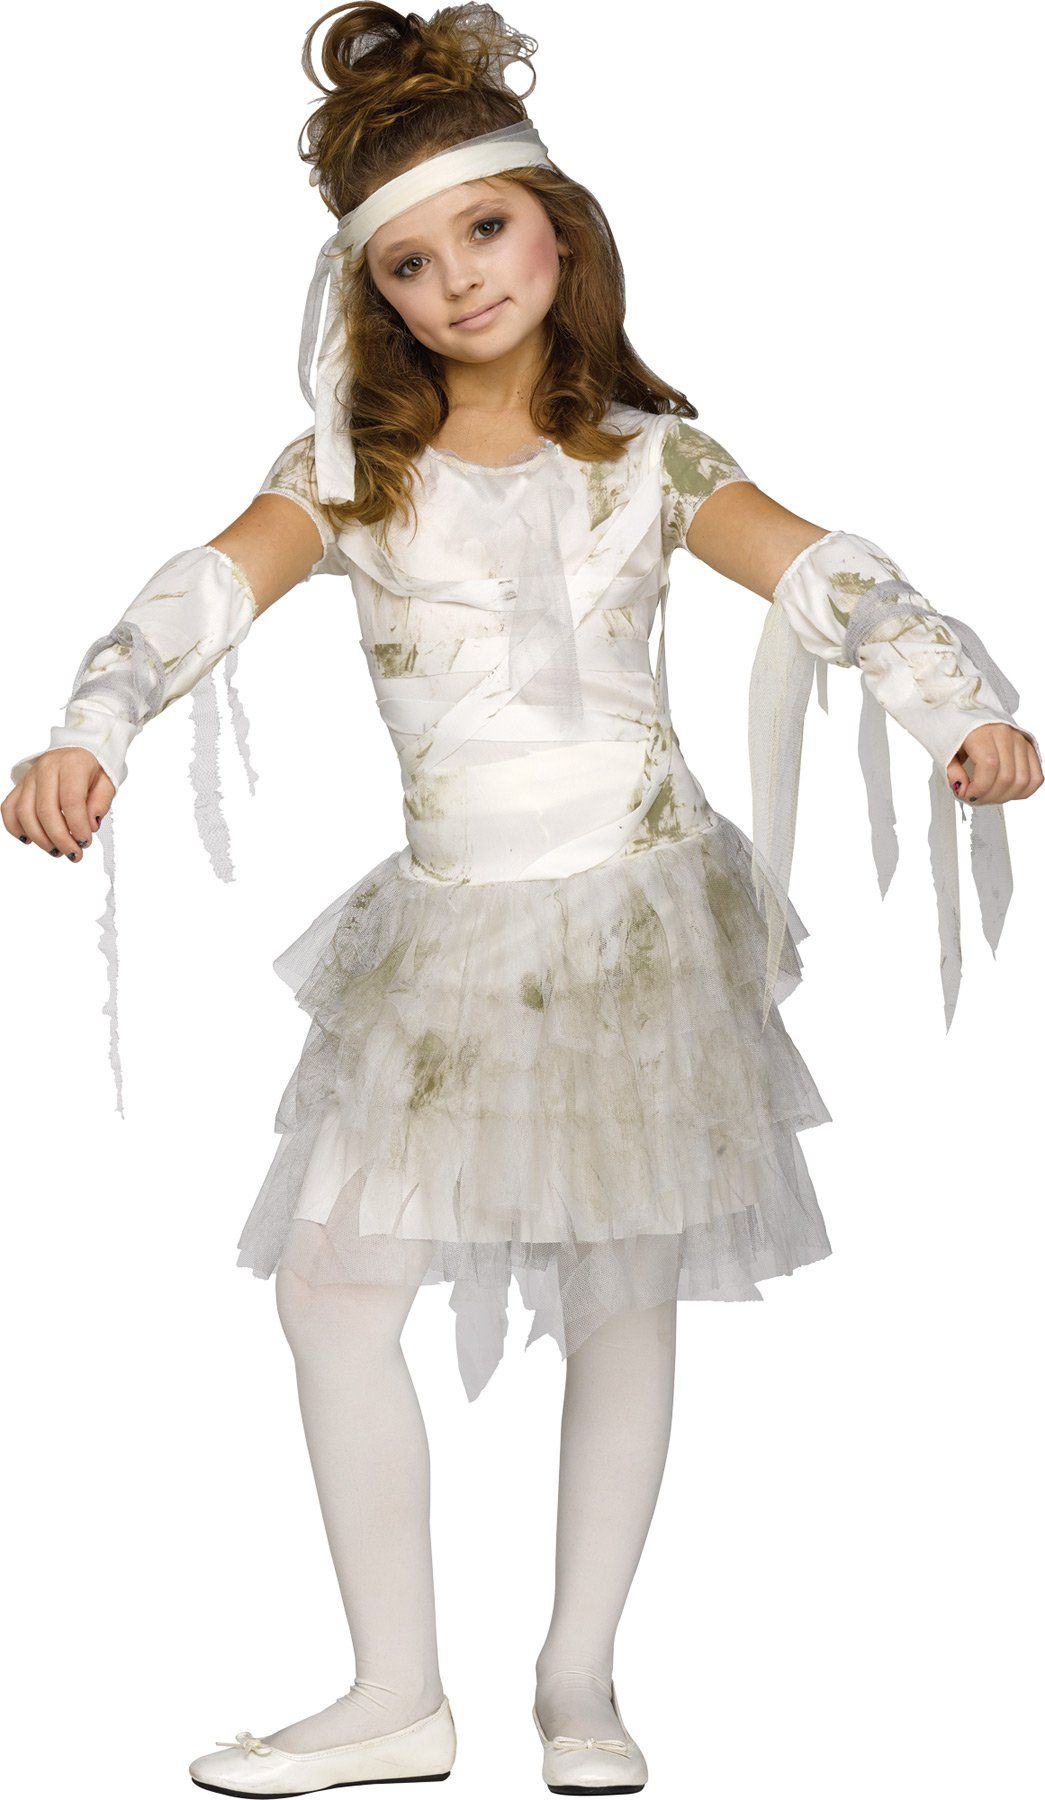 UHC Girls Mummy Outfit Scary Theme Fancy Dress Child